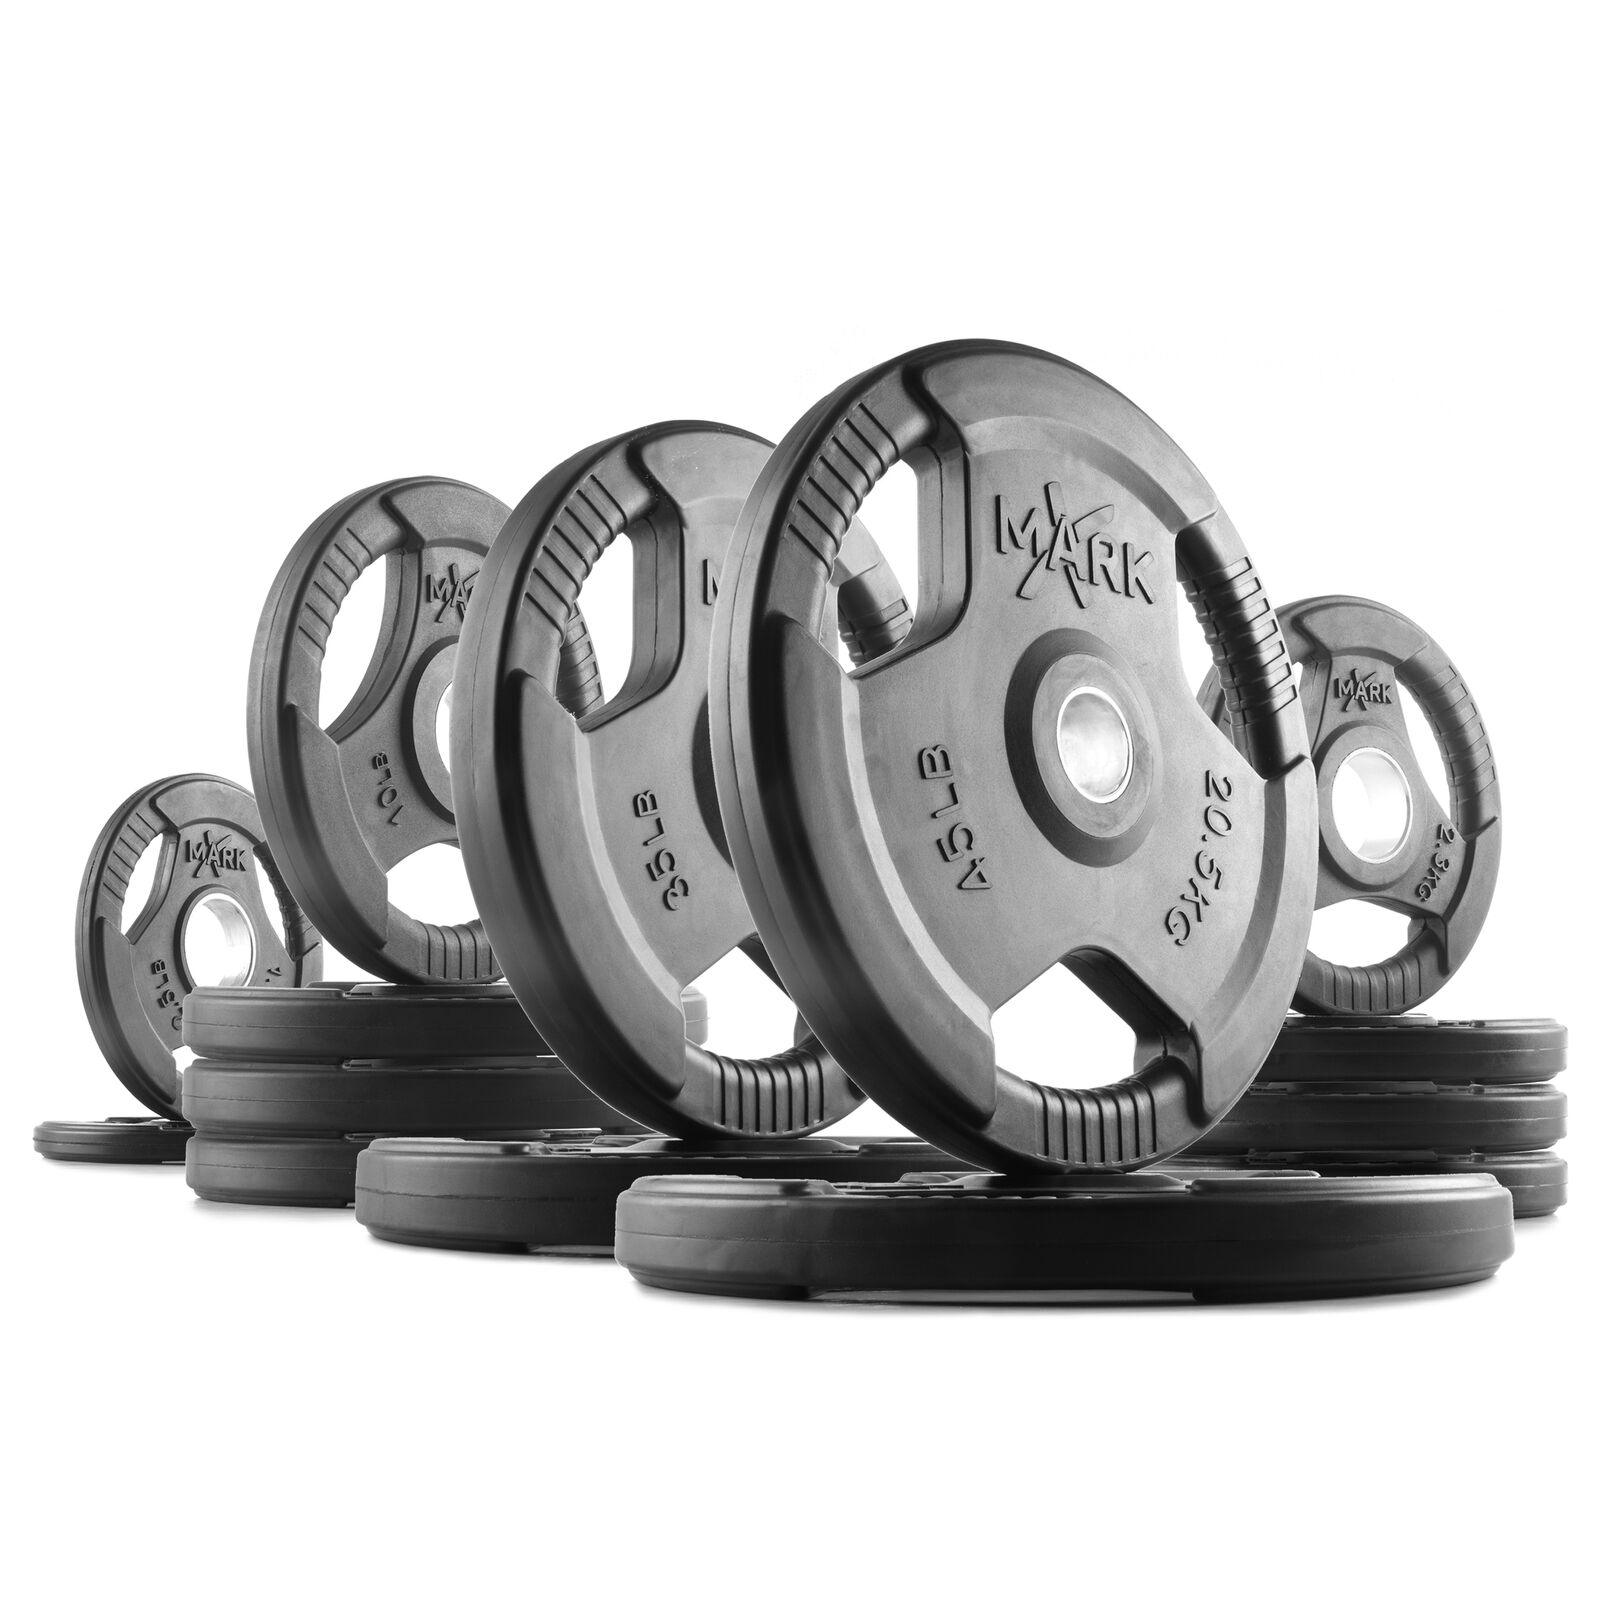 XMark Rubber Coated Tri-Grip Olympic Weight Plates  XM-3377-BAL-225 _ 225 lb. Set  there are more brands of high-quality goods